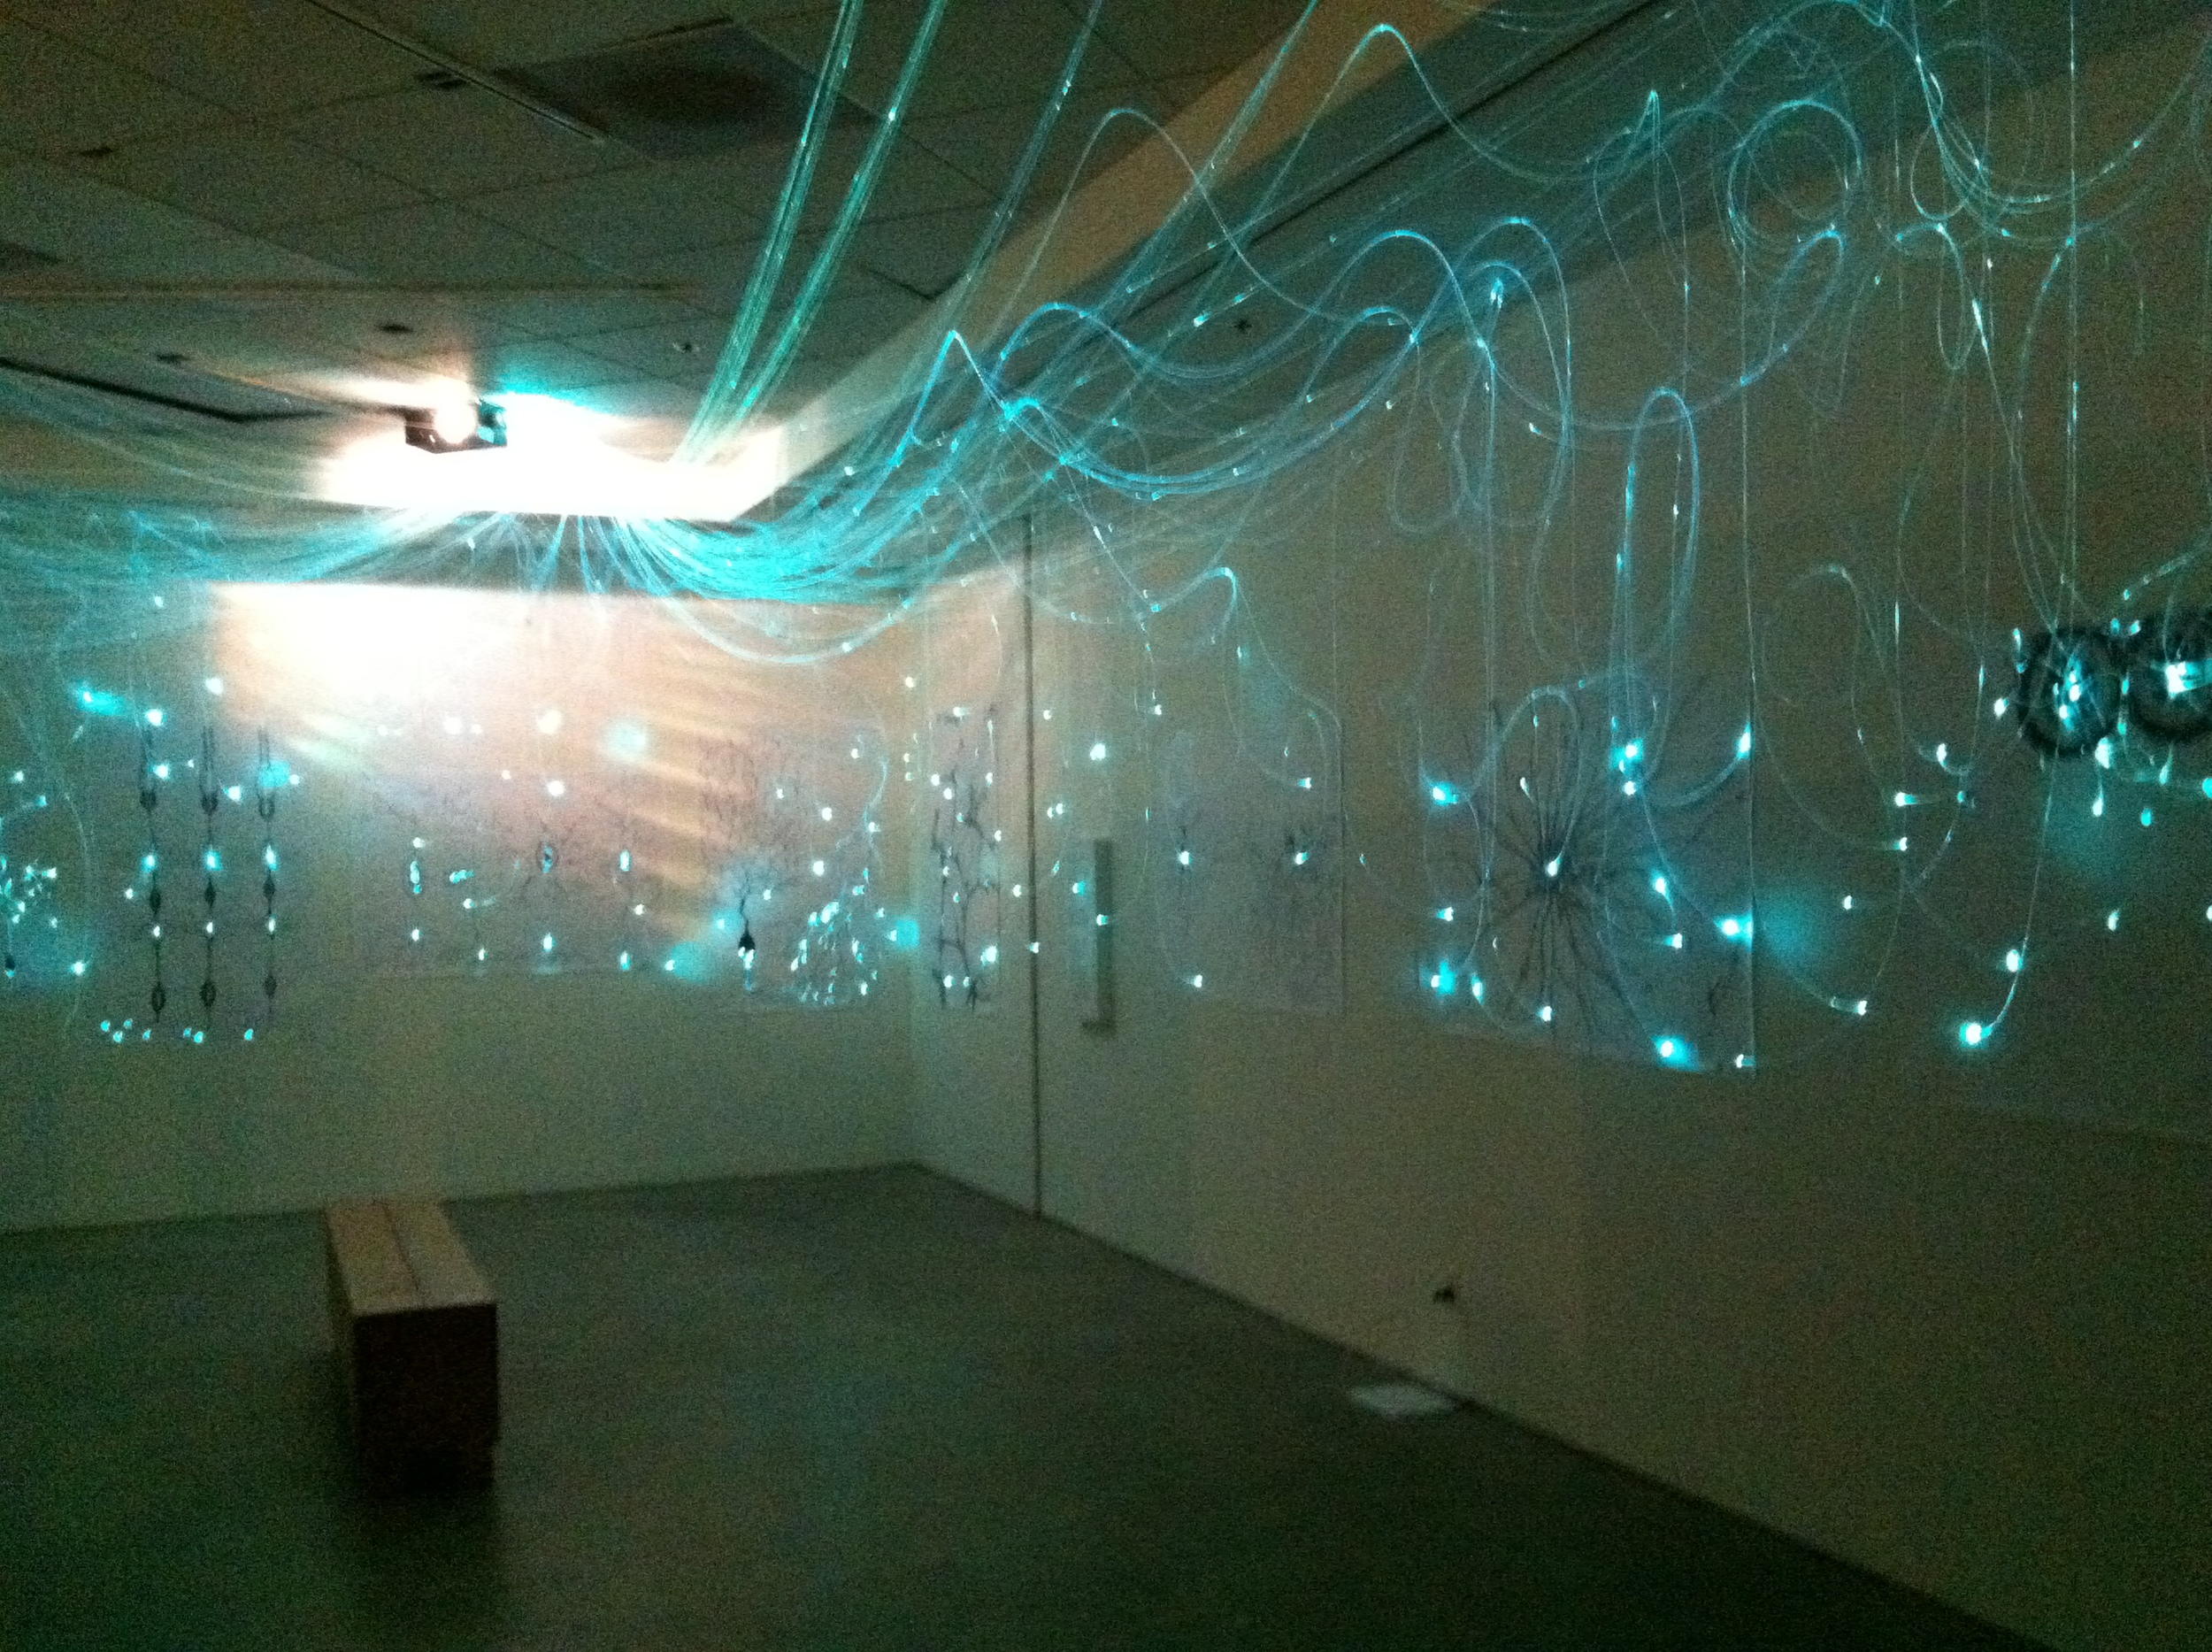 Light installation in teal phase